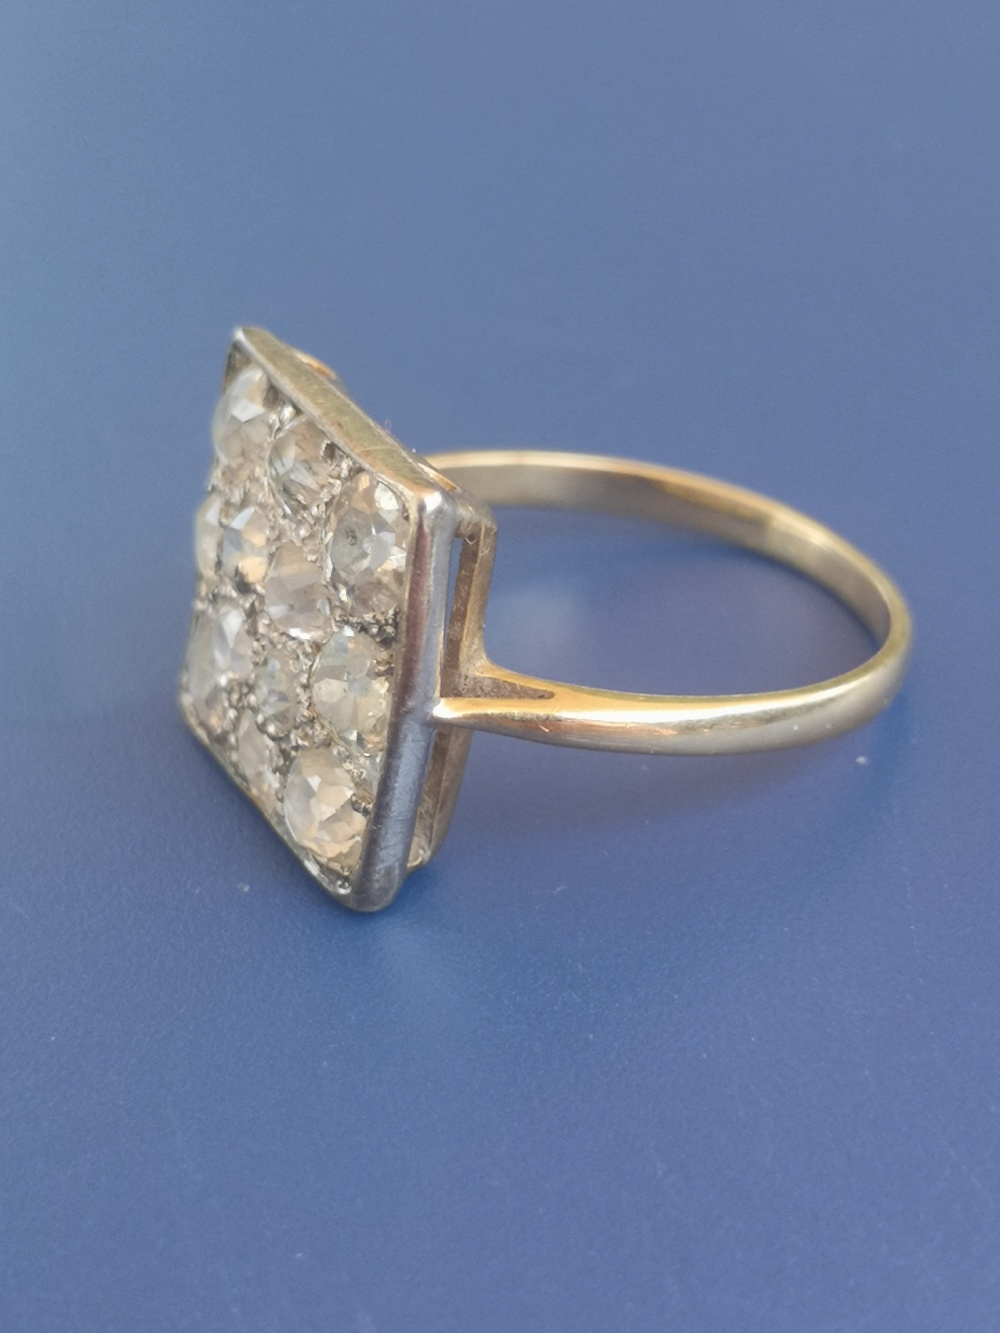 A diamond dress ring having a square pave setting on yellow metal shank. Finger size L. - Image 2 of 5